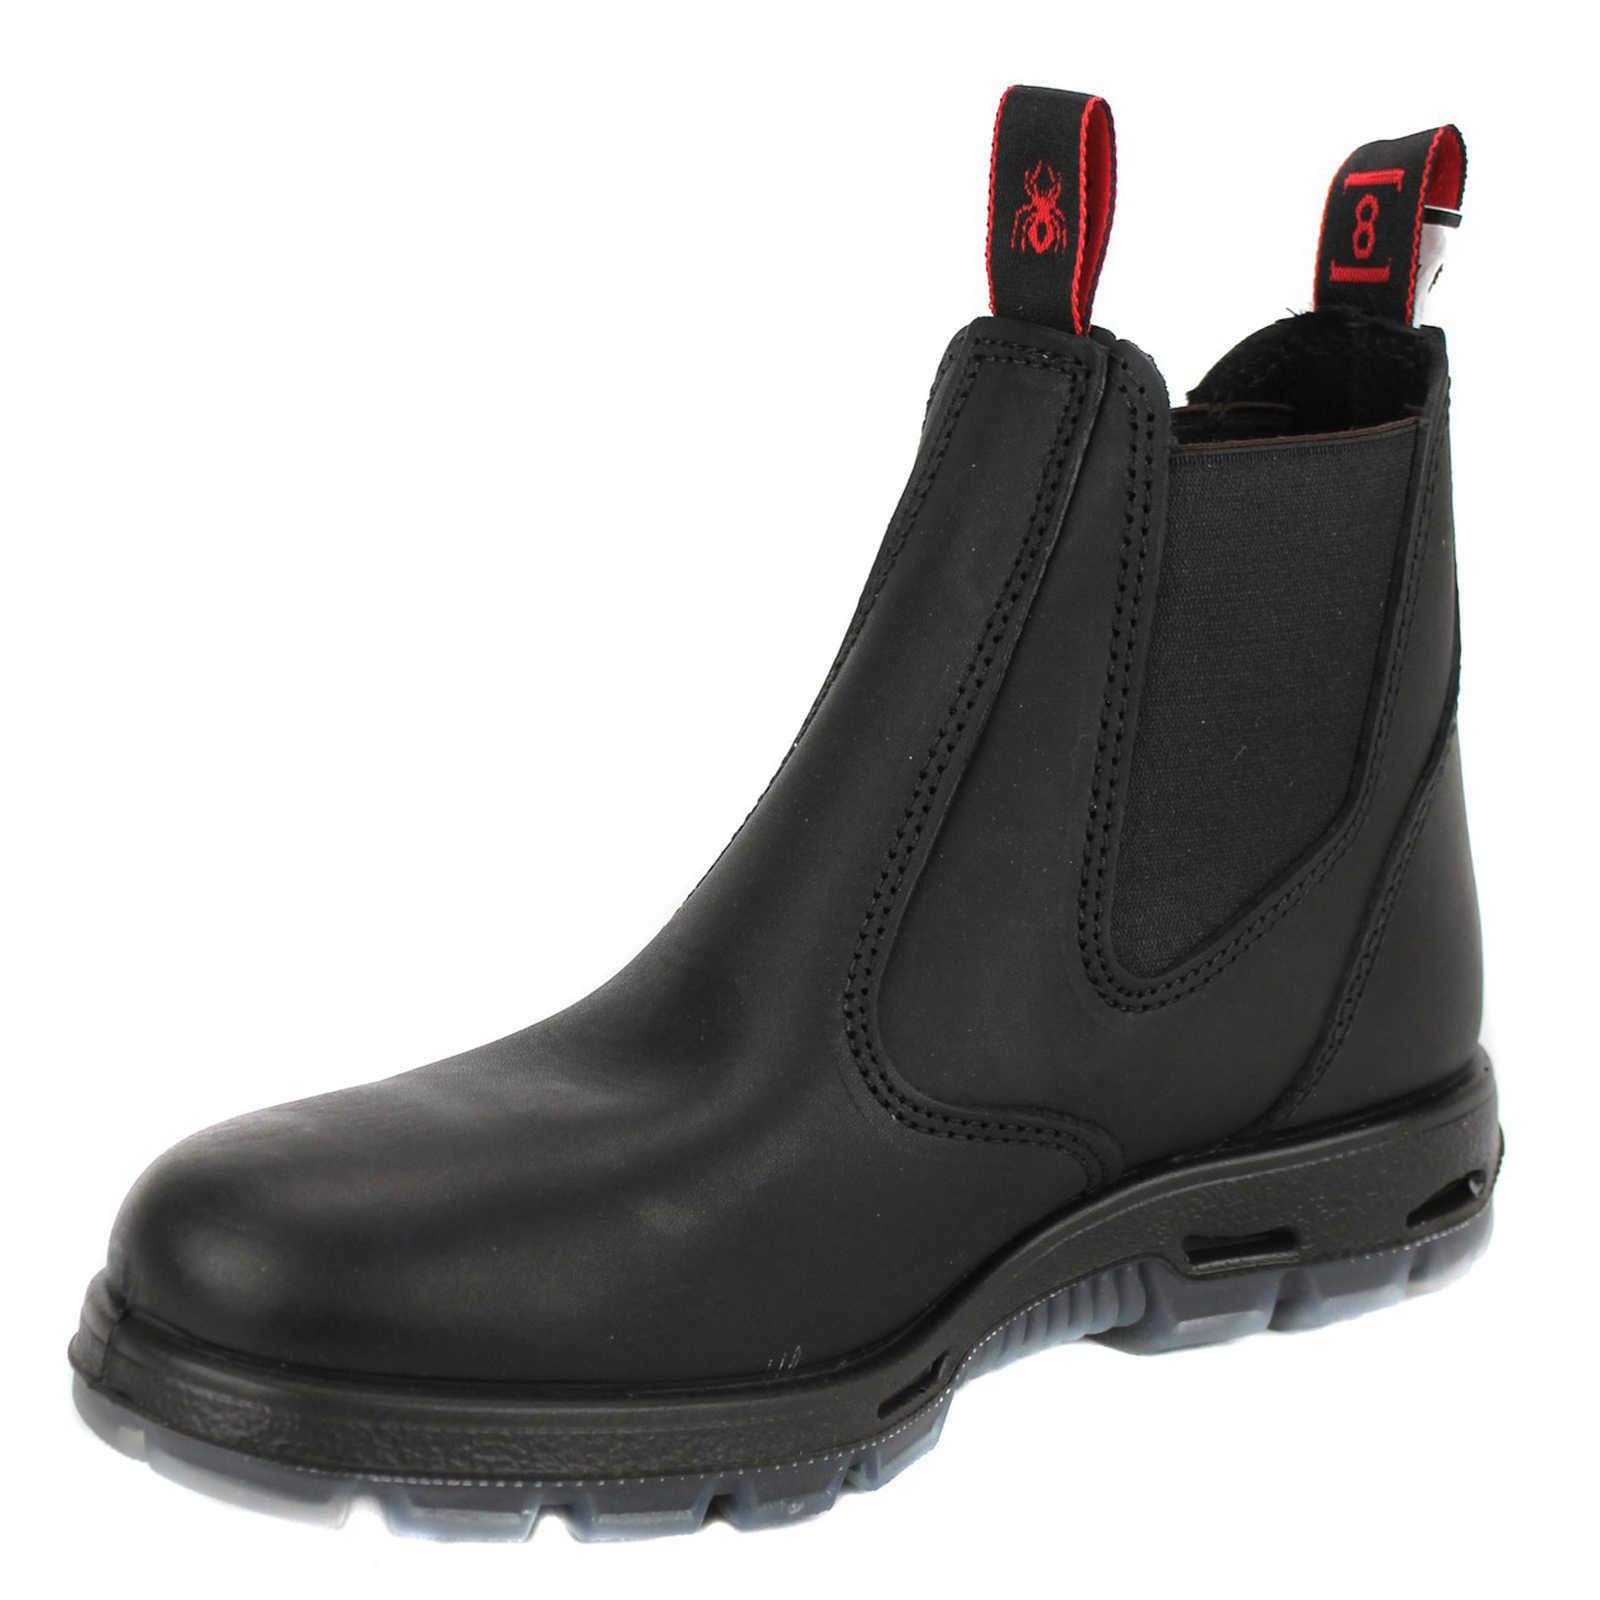 REDBACK UBBK BOOTS US 10 AU-UK 9 Black Slip-On Full Grain Leather Boot by REDBACK BOOTS USA